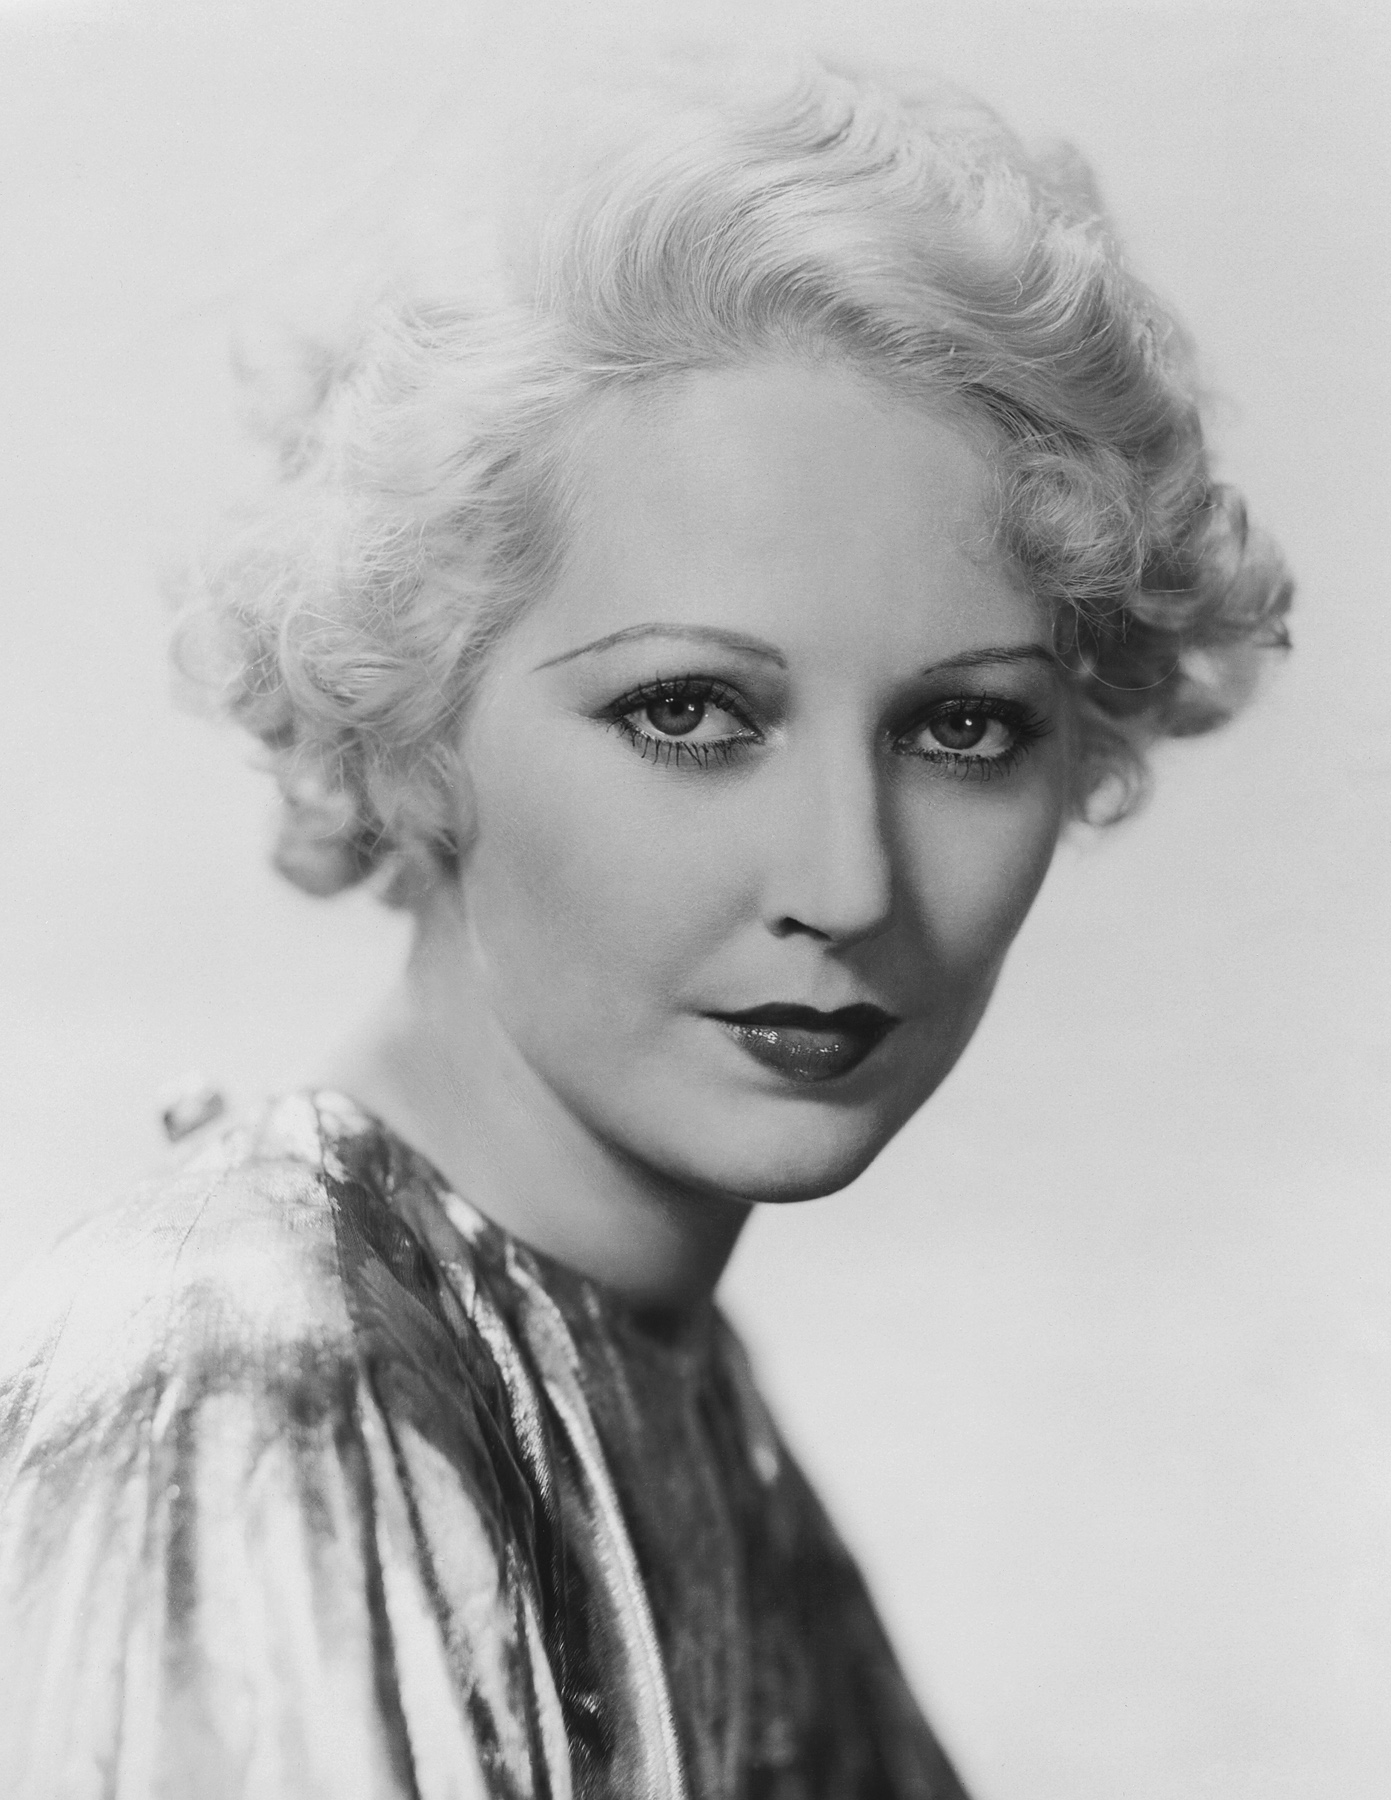 Lawrence, Massachusetts, USA, 1906-07-29, Thelma Todd